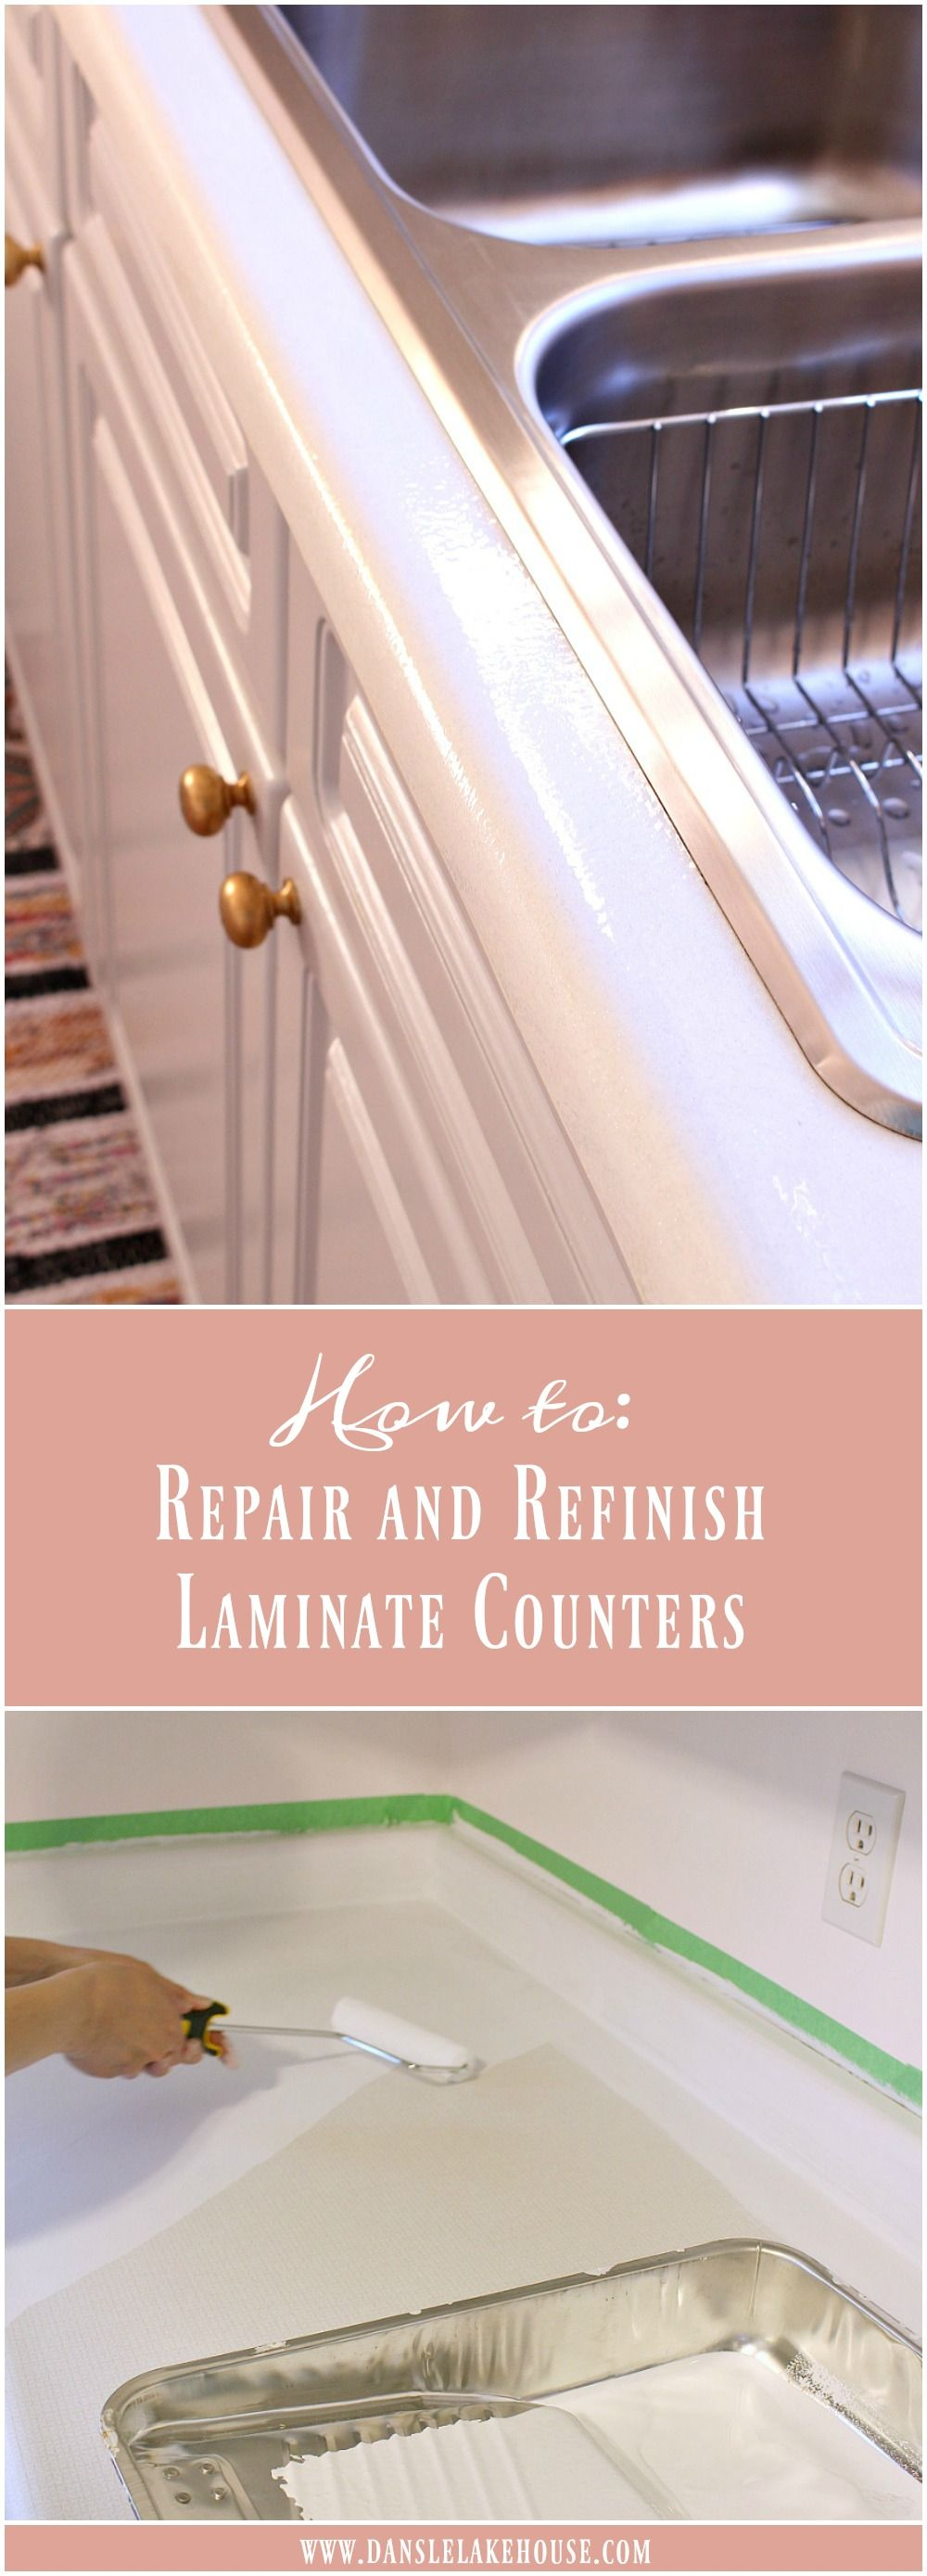 How To Repair And Refinish Laminate Counters Laminate